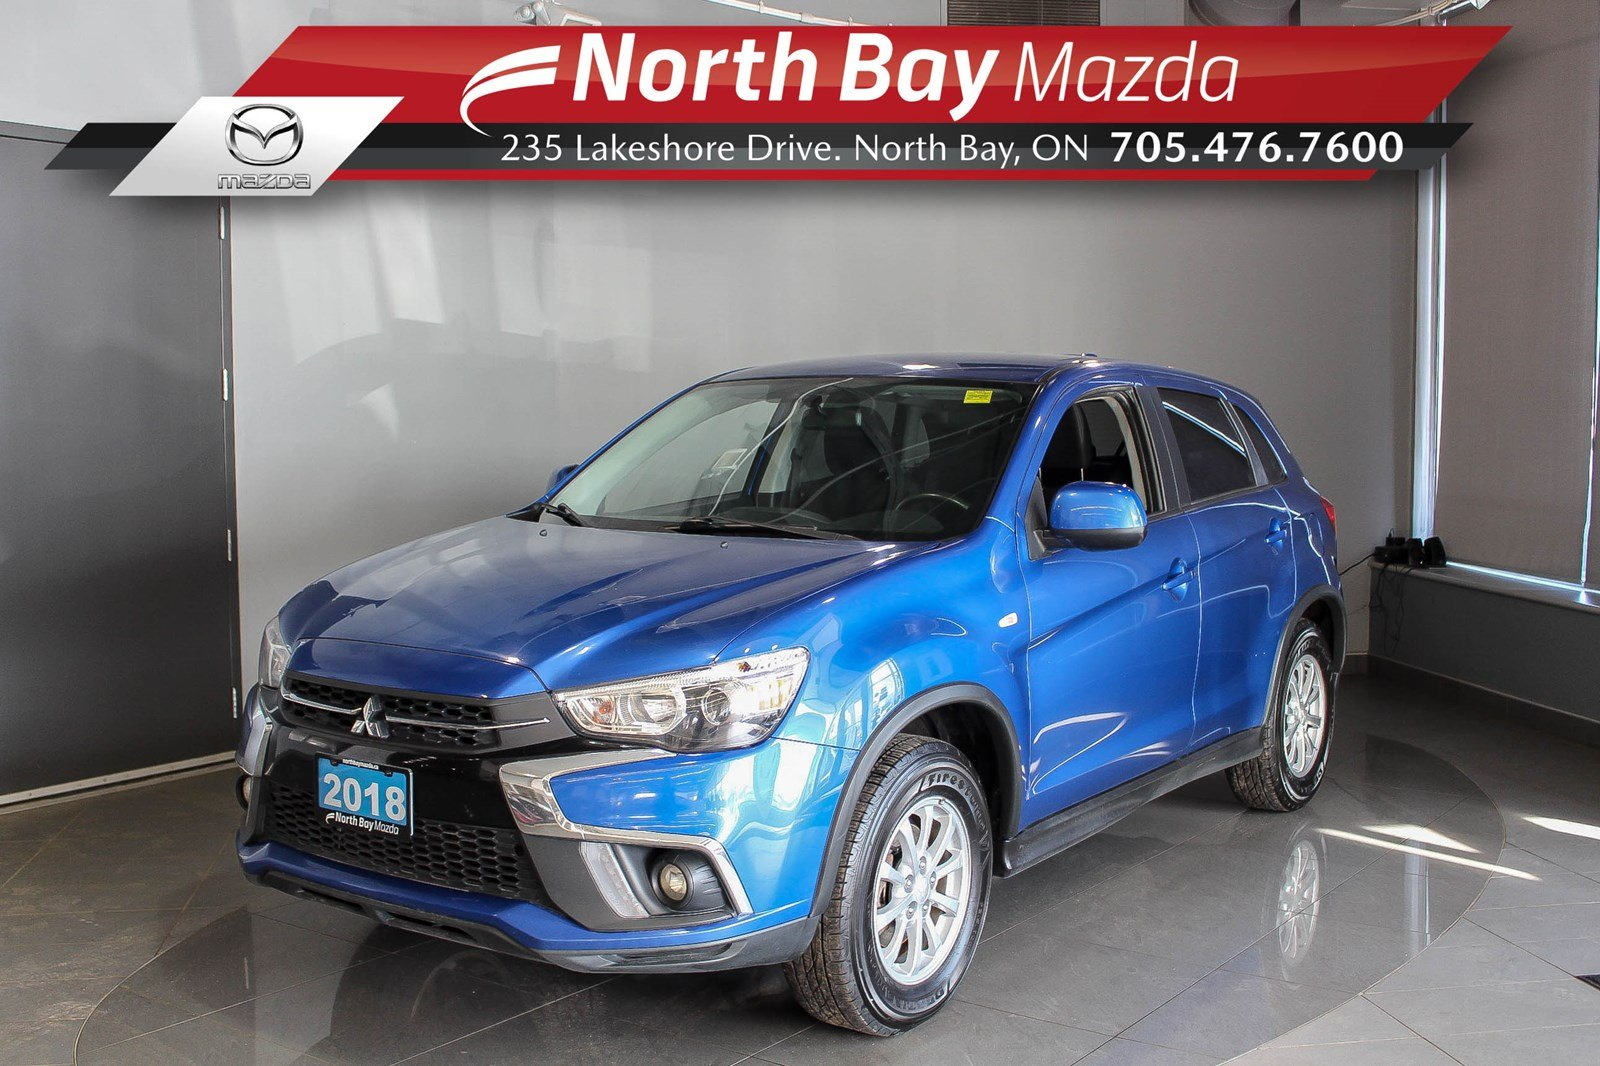 Pre-Owned 2018 Mitsubishi RVR SE AWD with Bluetooth, Heated Seats, Cruise